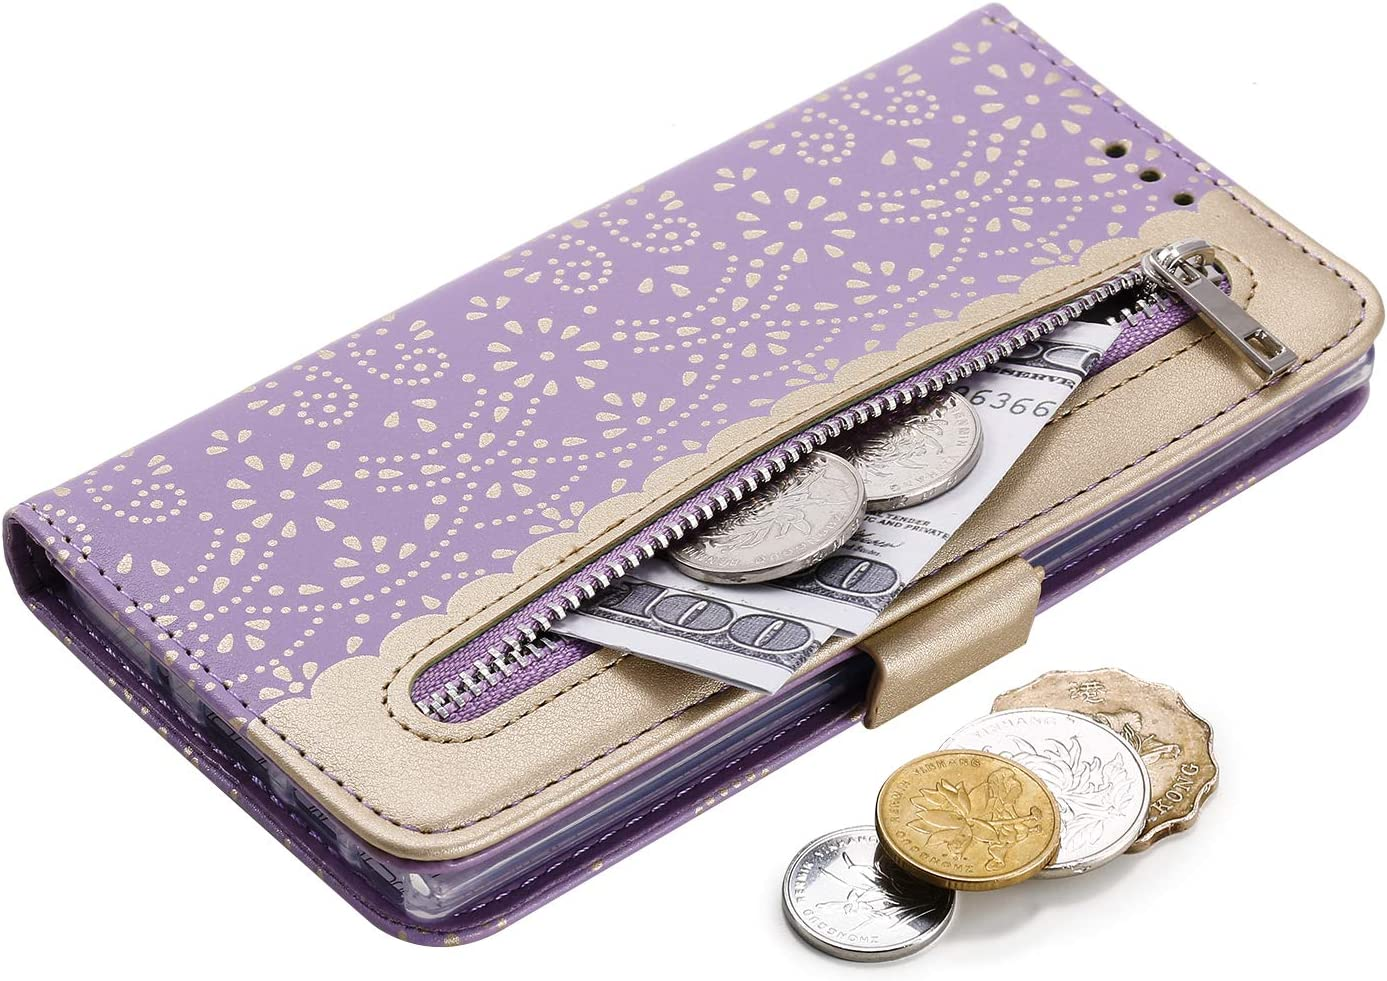 Rose Amocase Wallet Zipper Leather Case with 2 in 1 Stylus for Samsung Galaxy Note 10//Note 10 5G,Premium Pretty Lace Flower Print Wrist Strap Magnetic PU Leather Stand Shockproof